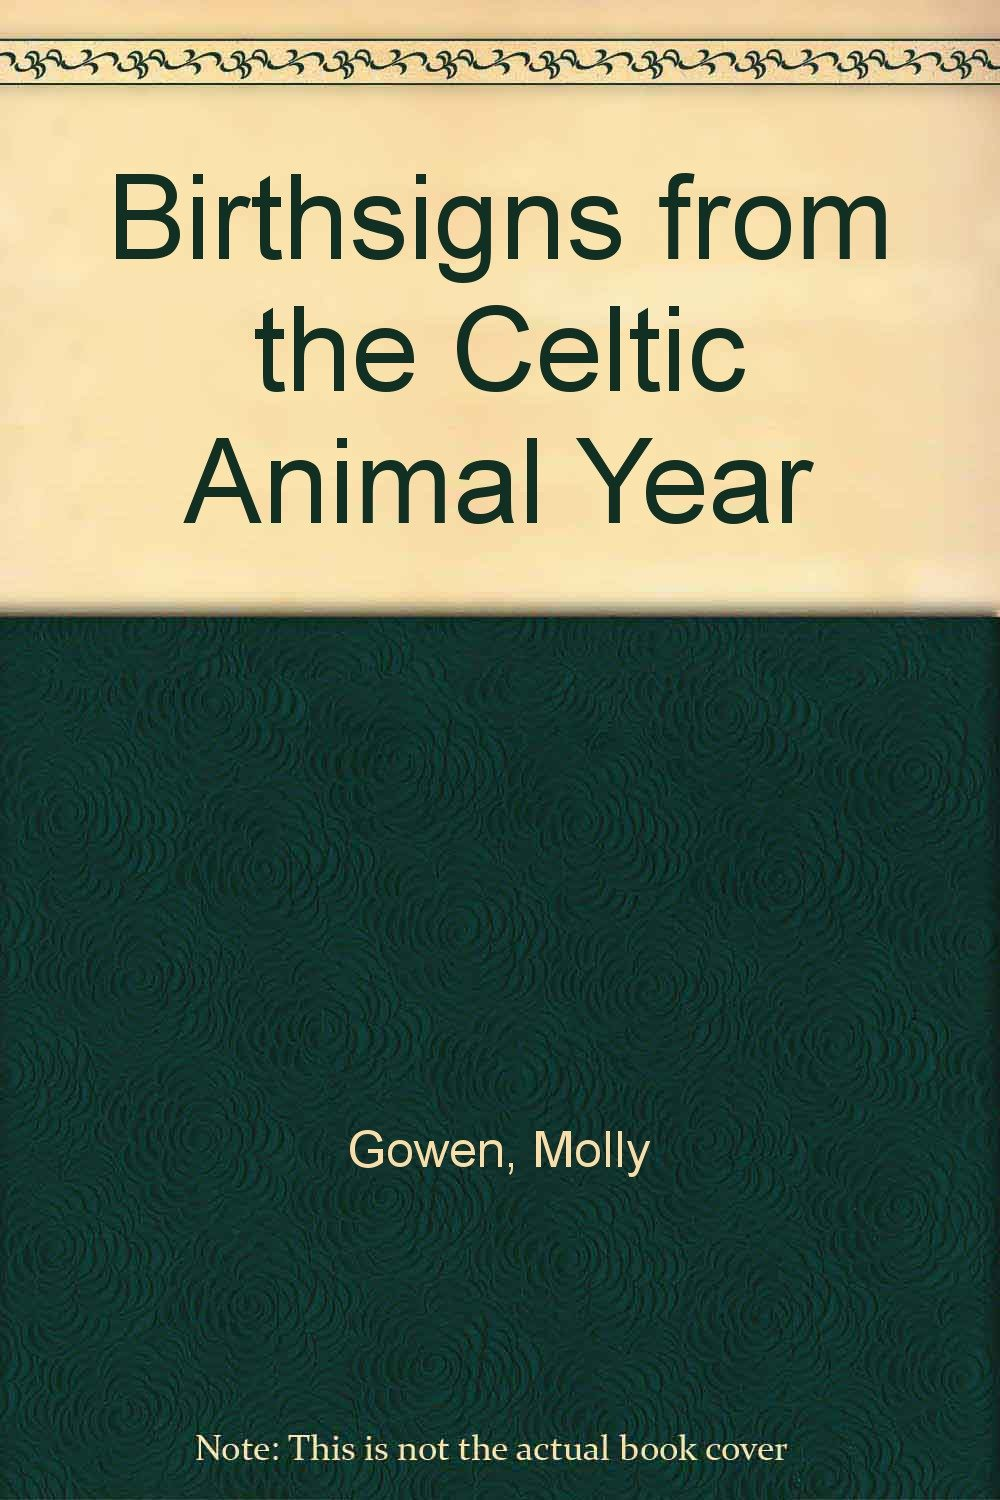 Birthsigns from the Celtic Animal Year